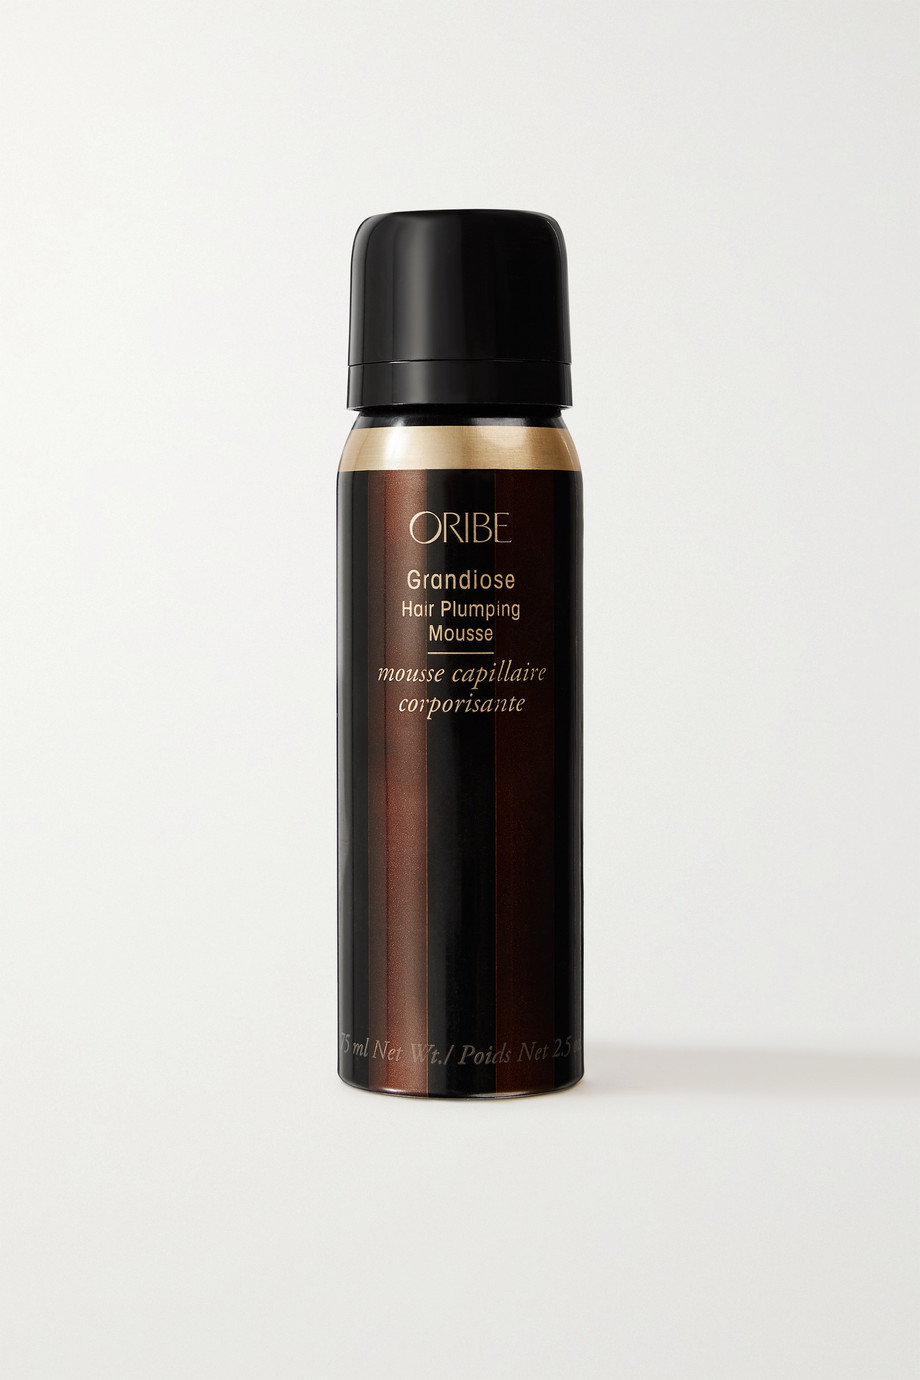 Grandiose Hair Plumping Mousse, 175ml, by Oribe